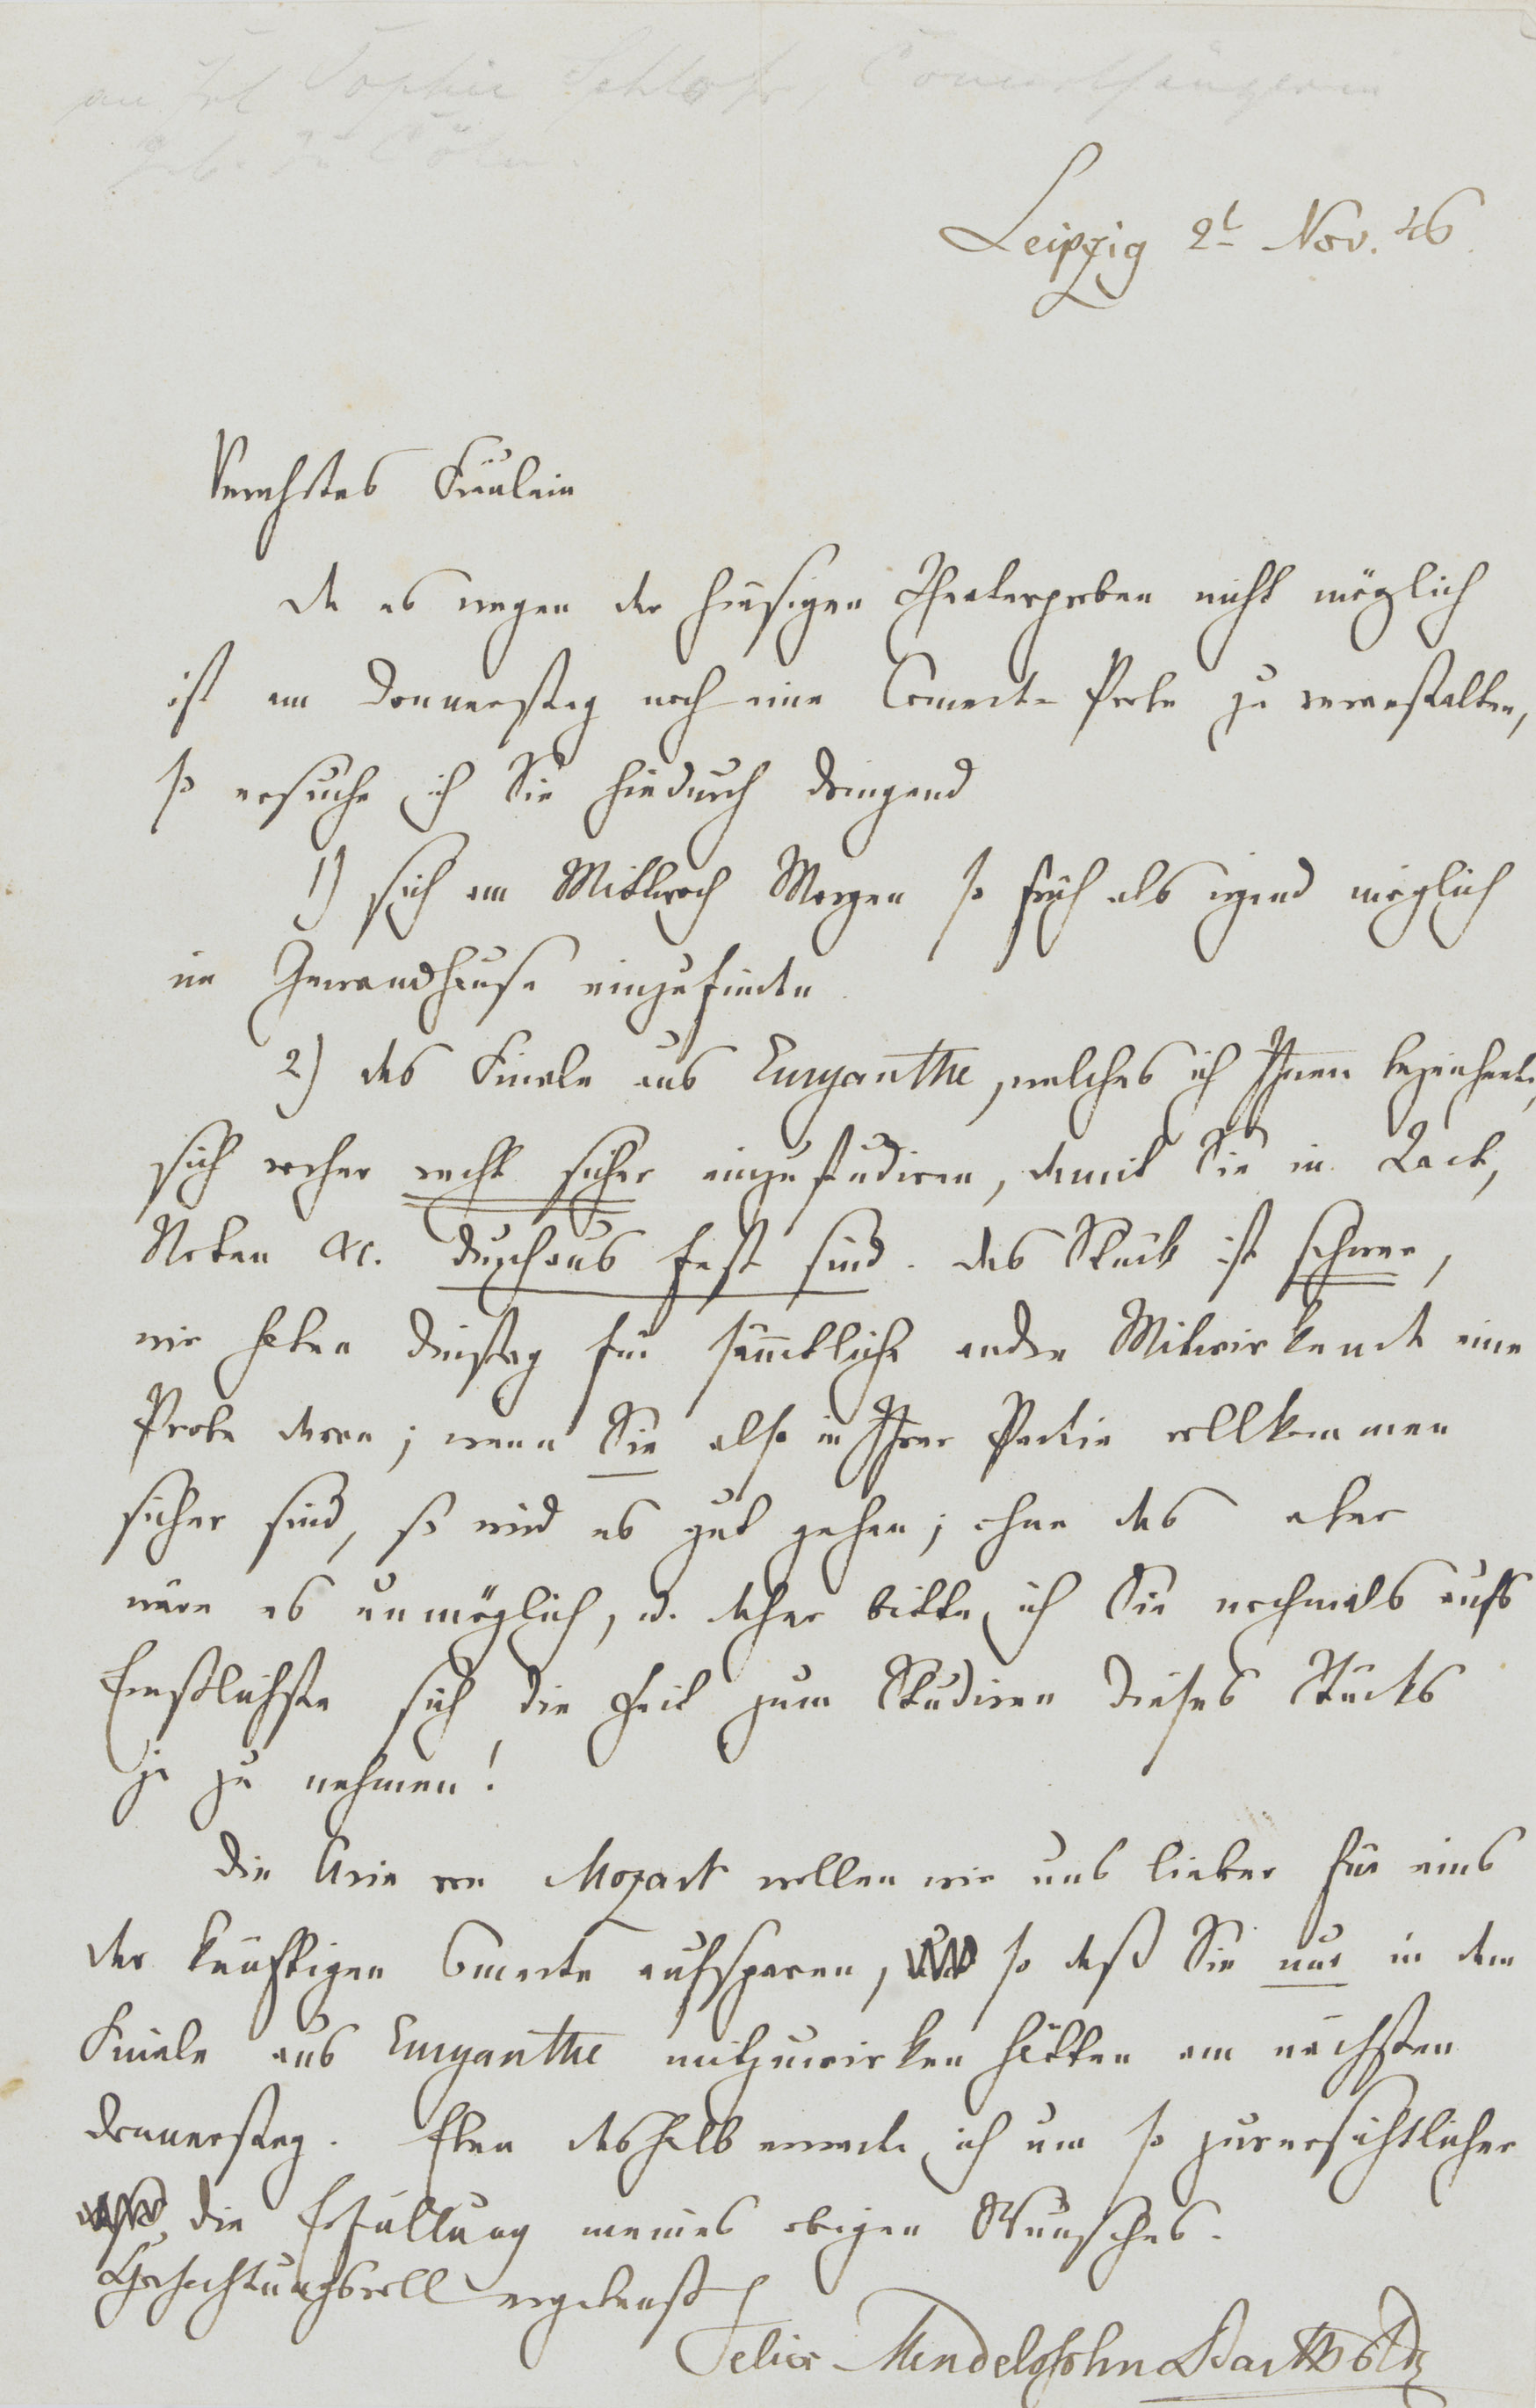 MENDELSSOHN BARTHOLDY, Felix (1809-1847). Autograph letter signed ('Felix Mendelssohn Bartholdy') to [the singer Sophie Schloss], Leipzig, 2 November 1846, asking her to attend a rehearsal of the finale from Weber's Euryanthe at the Gewandhaus on the following Wednesday 'so früh als möglich', having previously studied her part with the utmost attention, 'so as to be absolutely secure in bar, notes etc. The piece is hard ...; if you are absolutely sure in your part, it will go well; otherwise it will be impossible', reemphasising therefore the importance of her preparation, especially as the Mozart aria is to be held back for another occasion ('Das Stück ist schwer ...; wenn Sie also in Ihrer Partie vollkommen sicher sind, so wird es gut gehen; ohne das aber wäre es unmöglich'), one page, 8vo, on a bifolium.